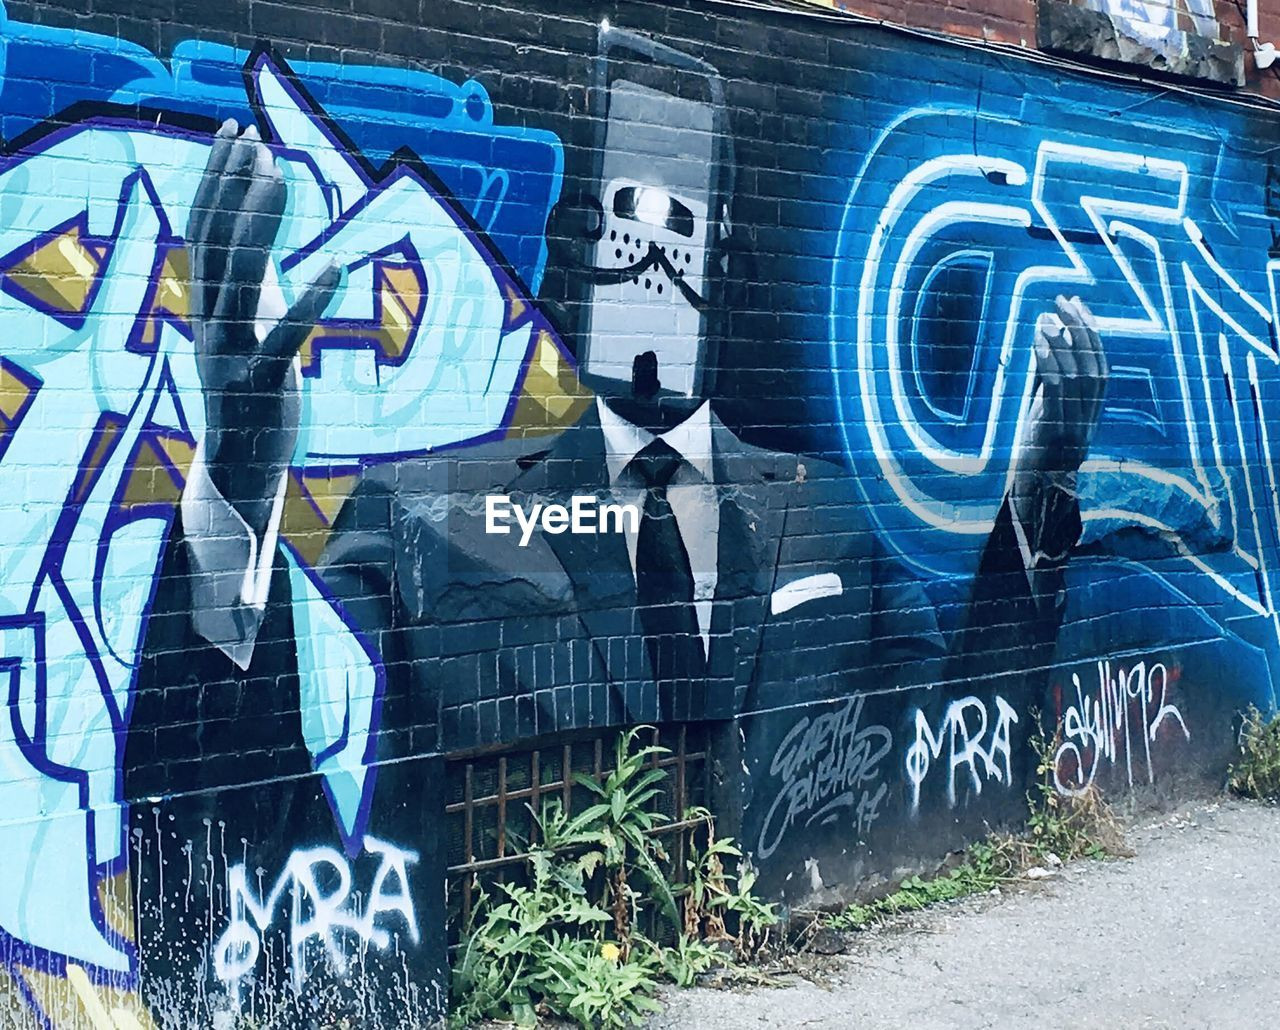 graffiti, text, creativity, art and craft, western script, architecture, wall - building feature, built structure, no people, street art, communication, day, multi colored, city, building exterior, representation, outdoors, human representation, capital letter, mural, message